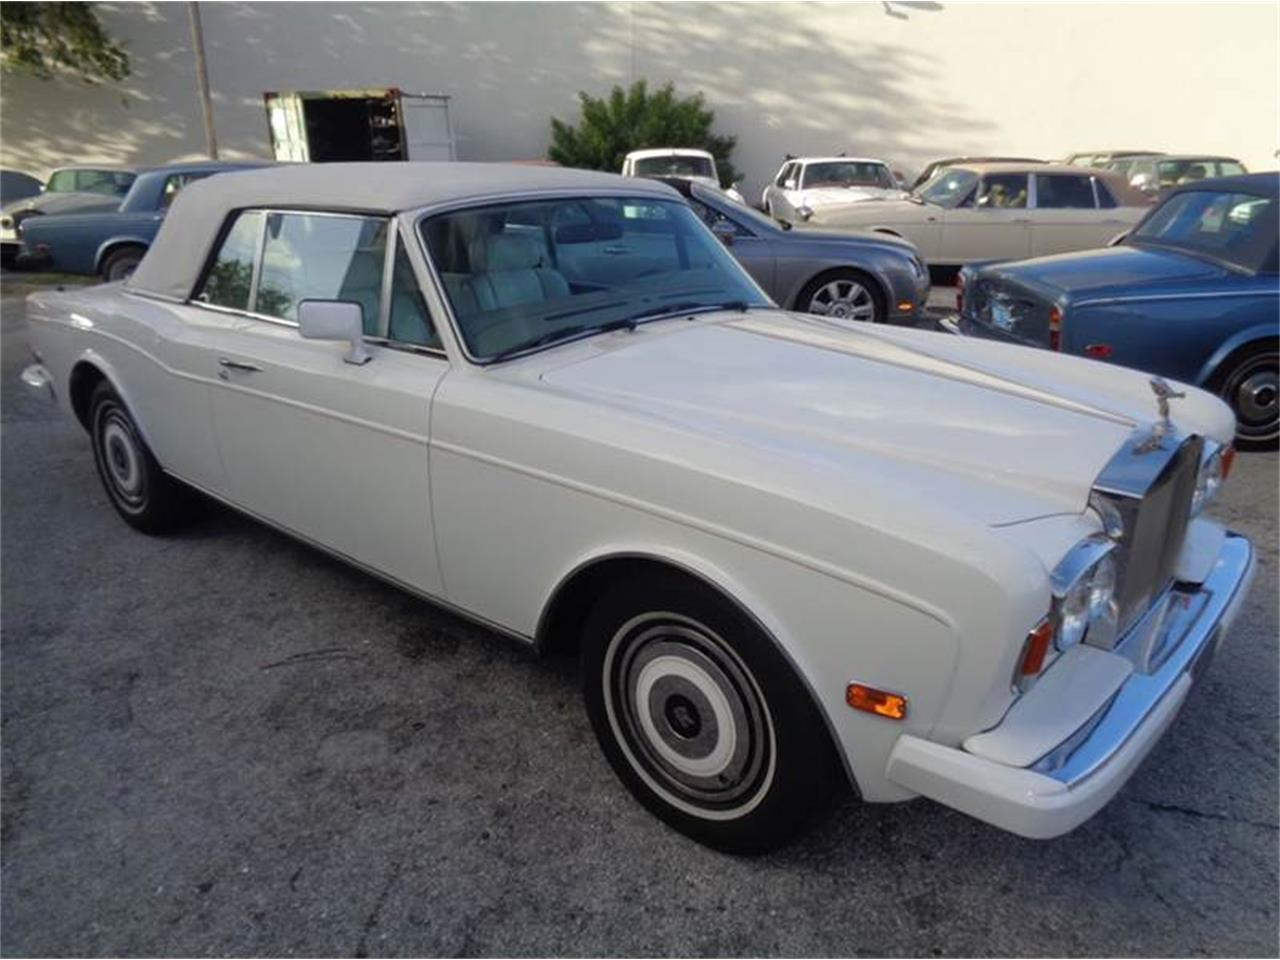 Large Picture of 1989 Rolls-Royce Corniche located in Fort Lauderdale Florida - $69,950.00 - JPI2